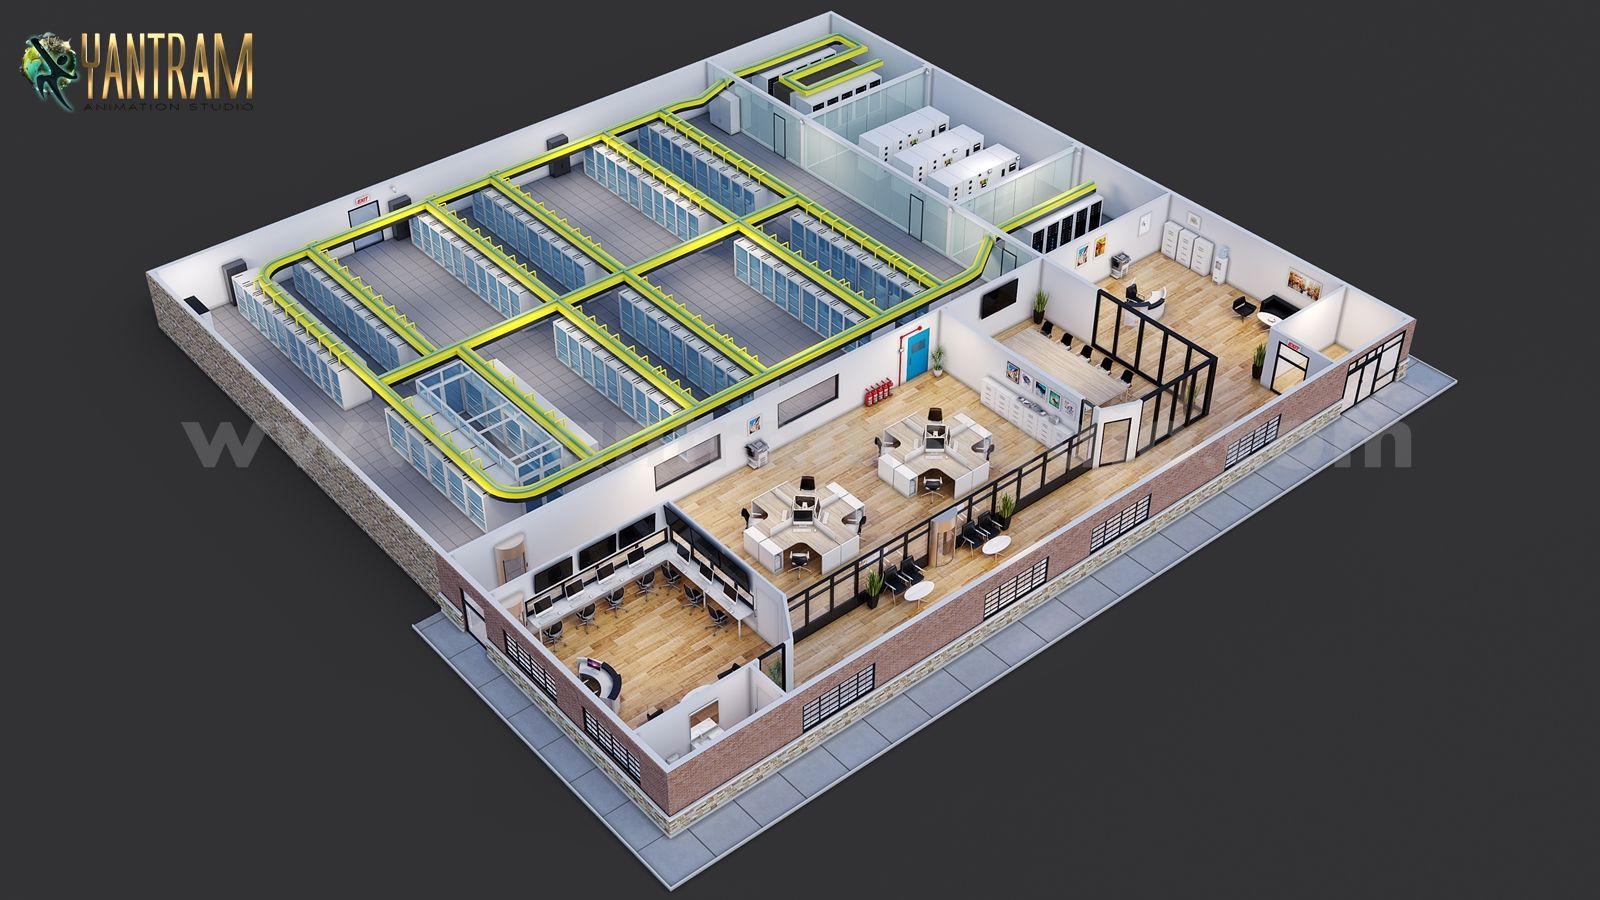 Commercial Large Data Storage Room 3d Floor Plan By Architectural Visualisation S Architectural Design Studio Architectural Animation Commercial Building Plans